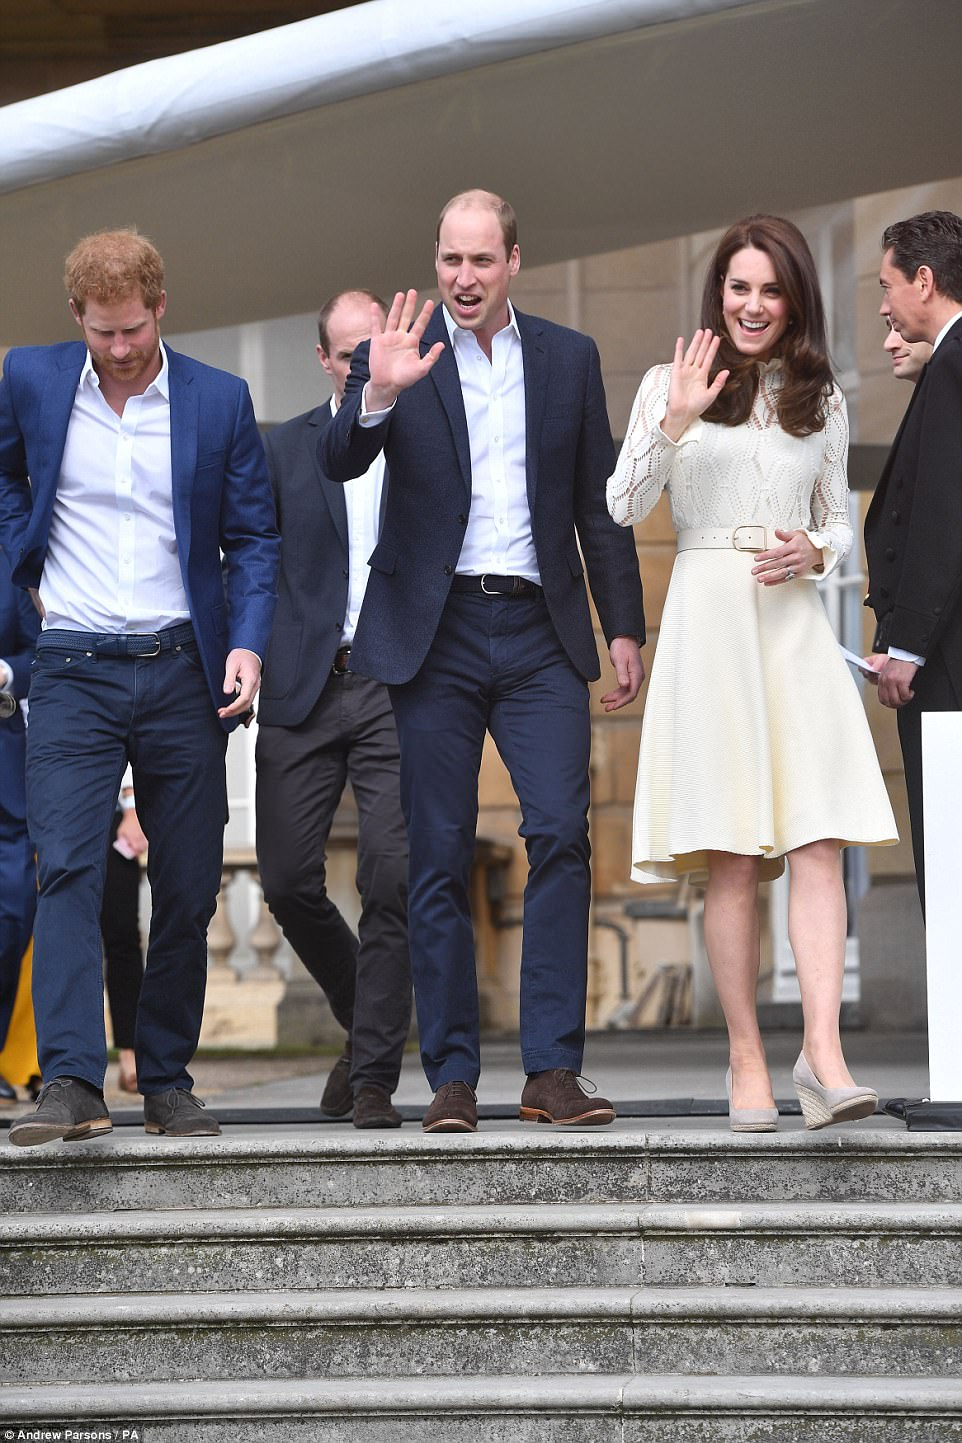 The Duke and Duchess of Cambridge and Prince Harry hosting a Buckingham Palace tea party for the children of Armed Forces men and women who died in service to their country